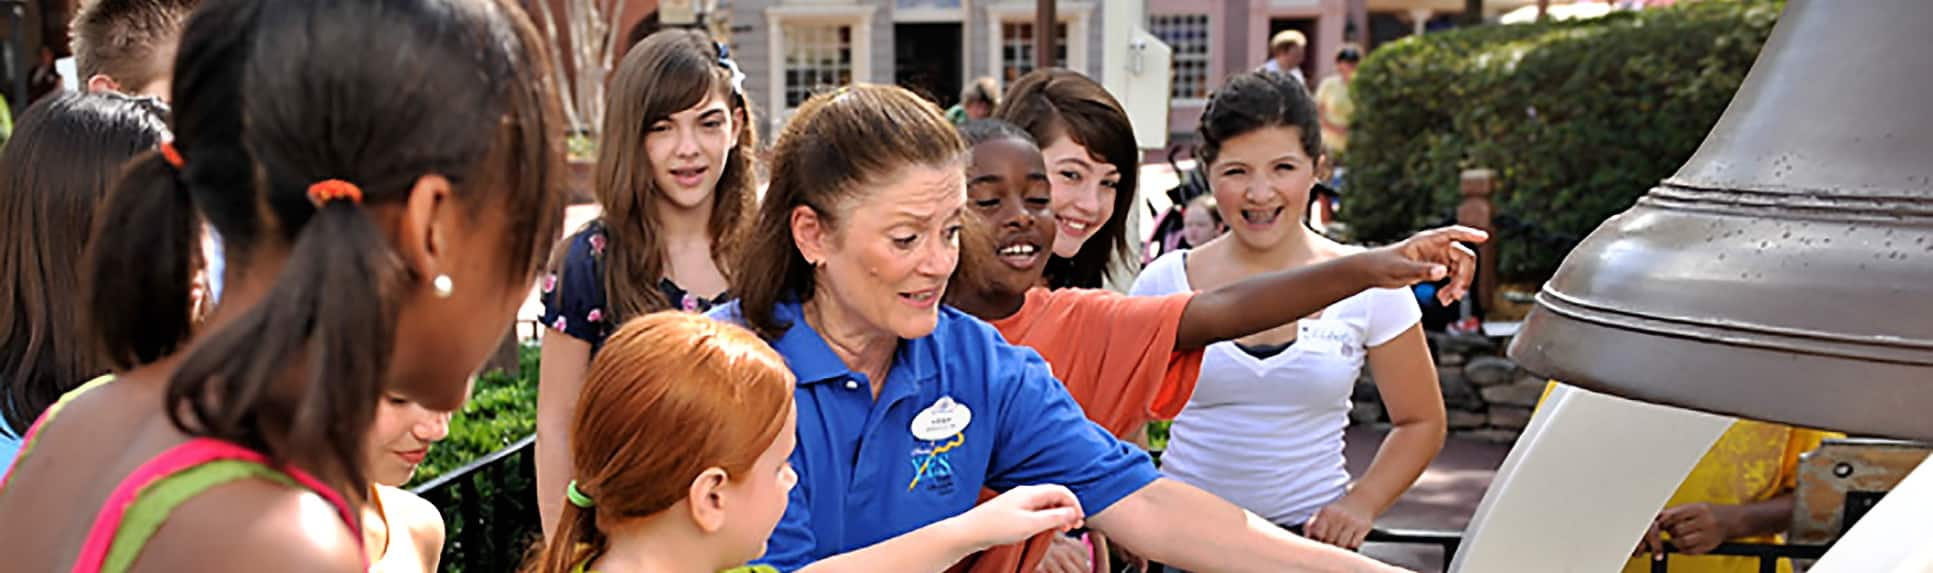 A Cast Member with smiling children